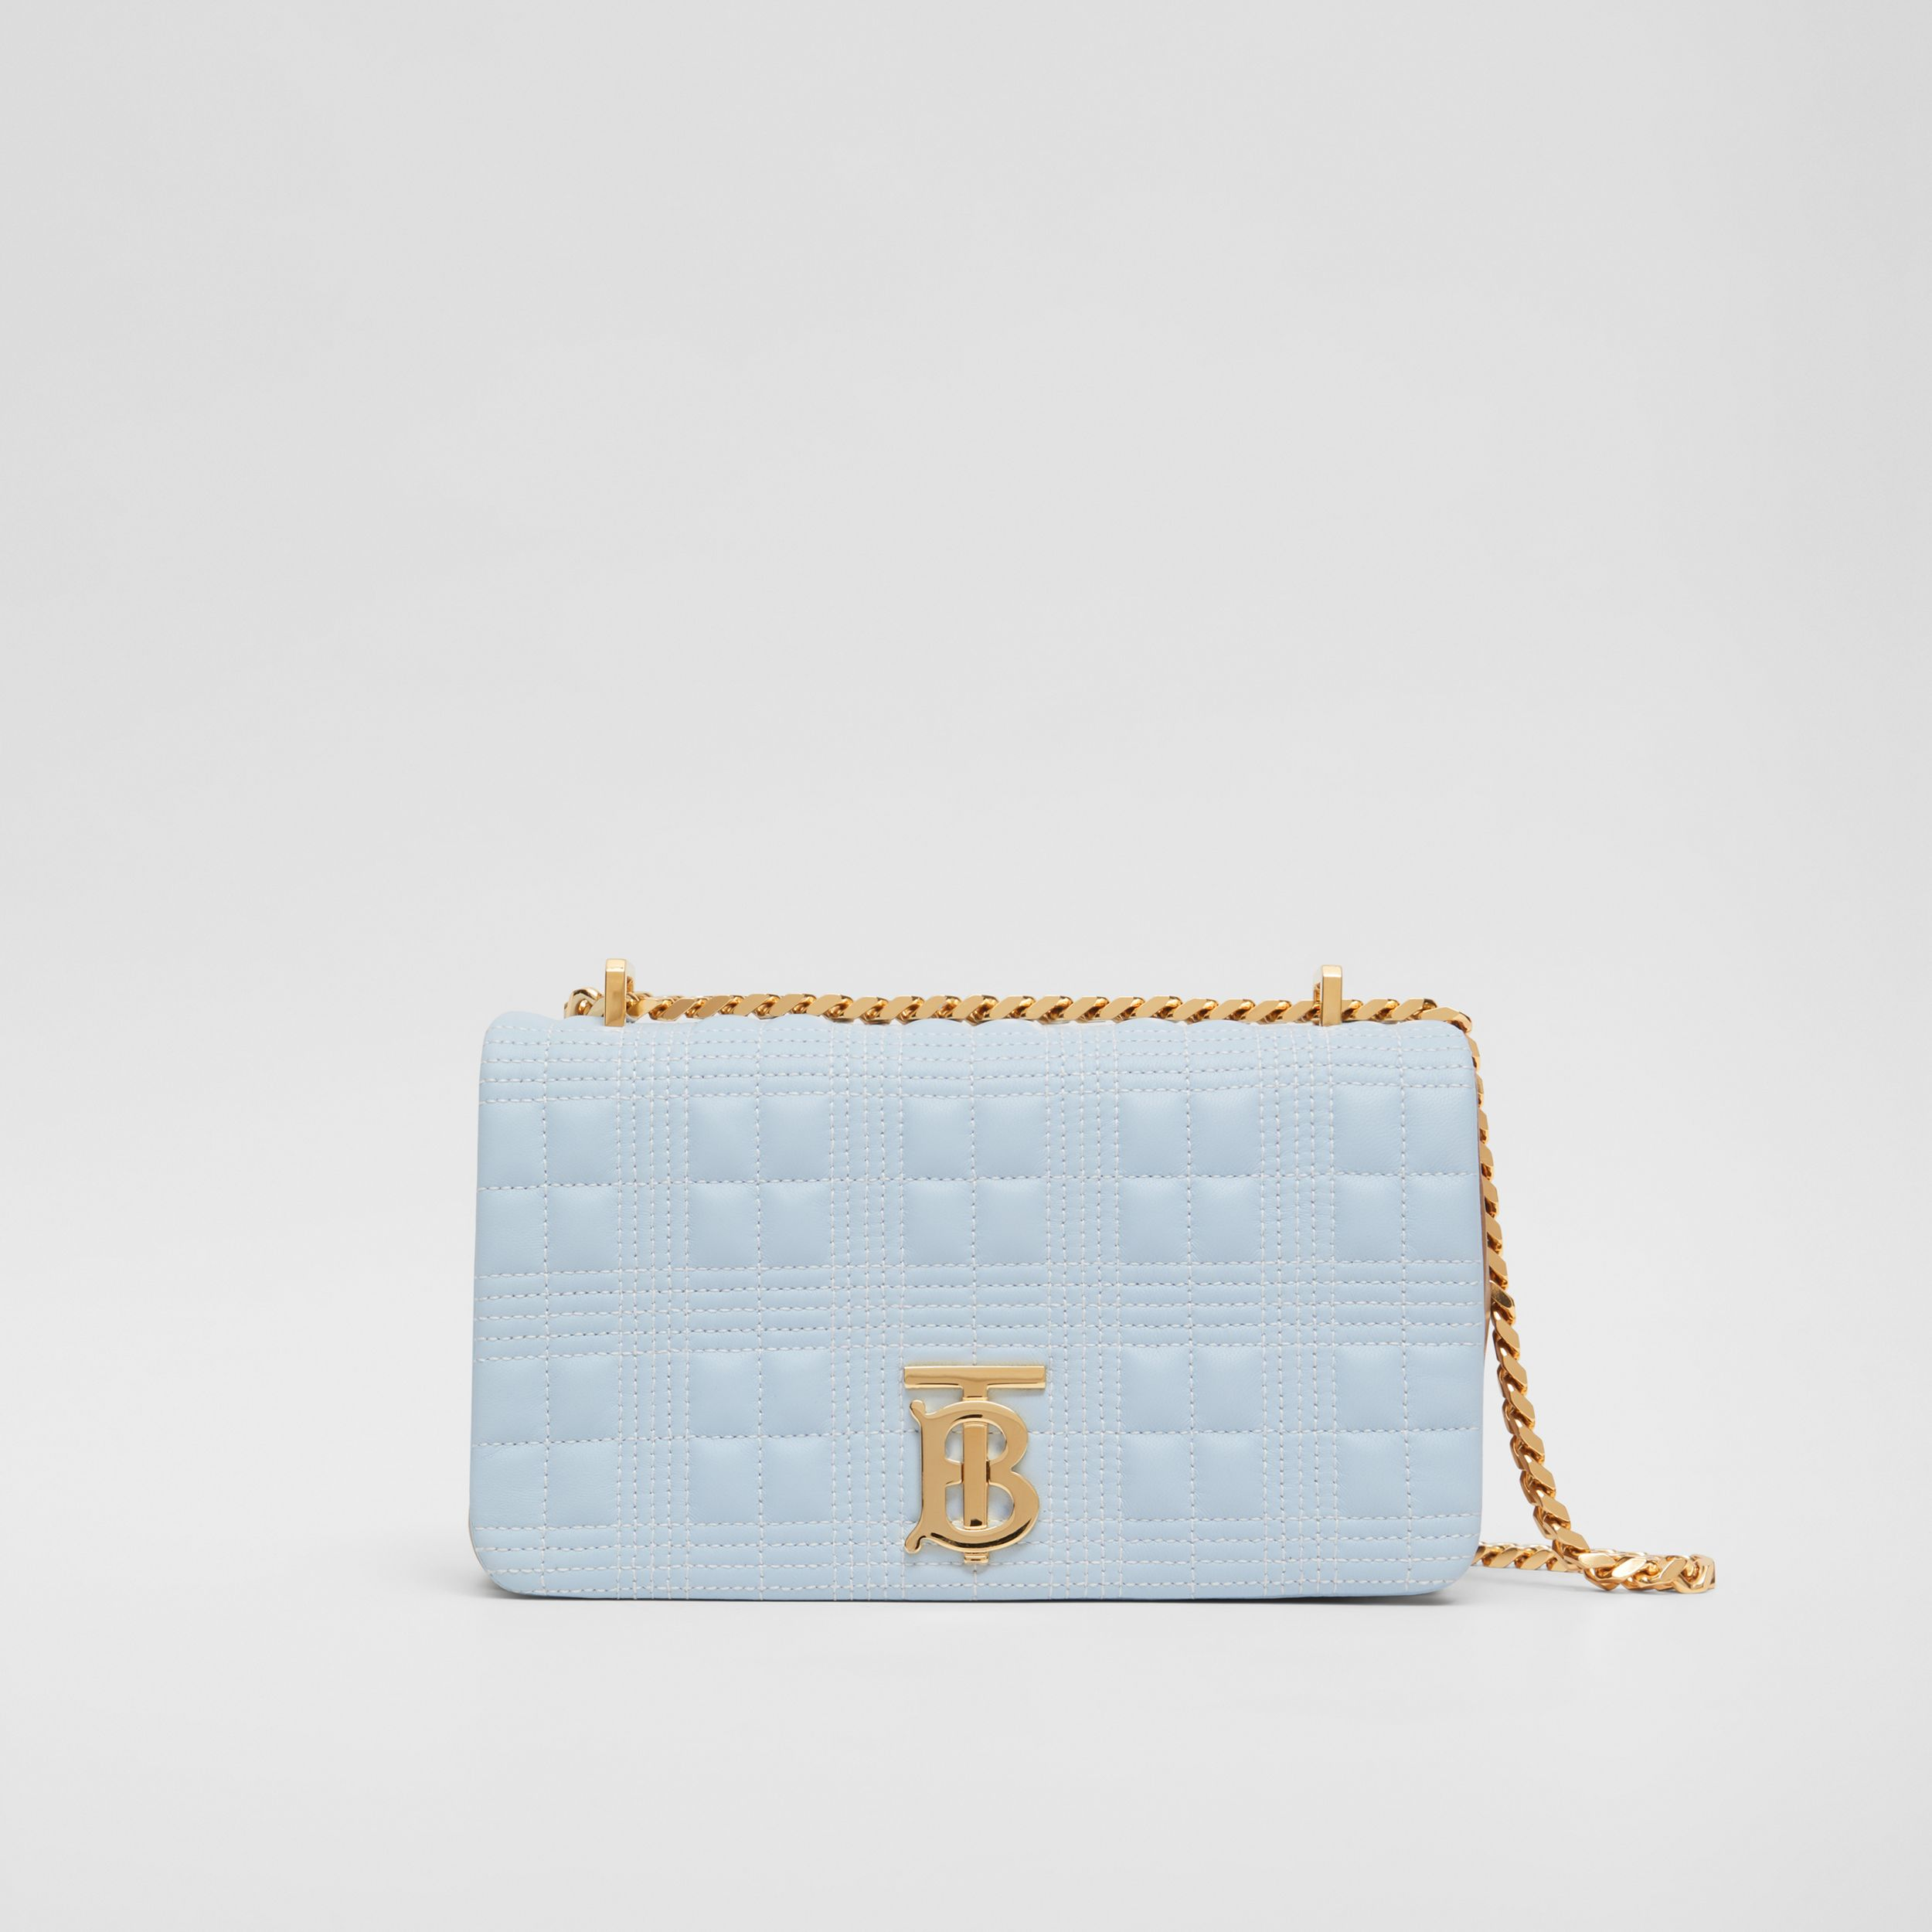 Small Quilted Tri-tone Lambskin Lola Bag in Pale Blue/camel/black - Women | Burberry United Kingdom - 1